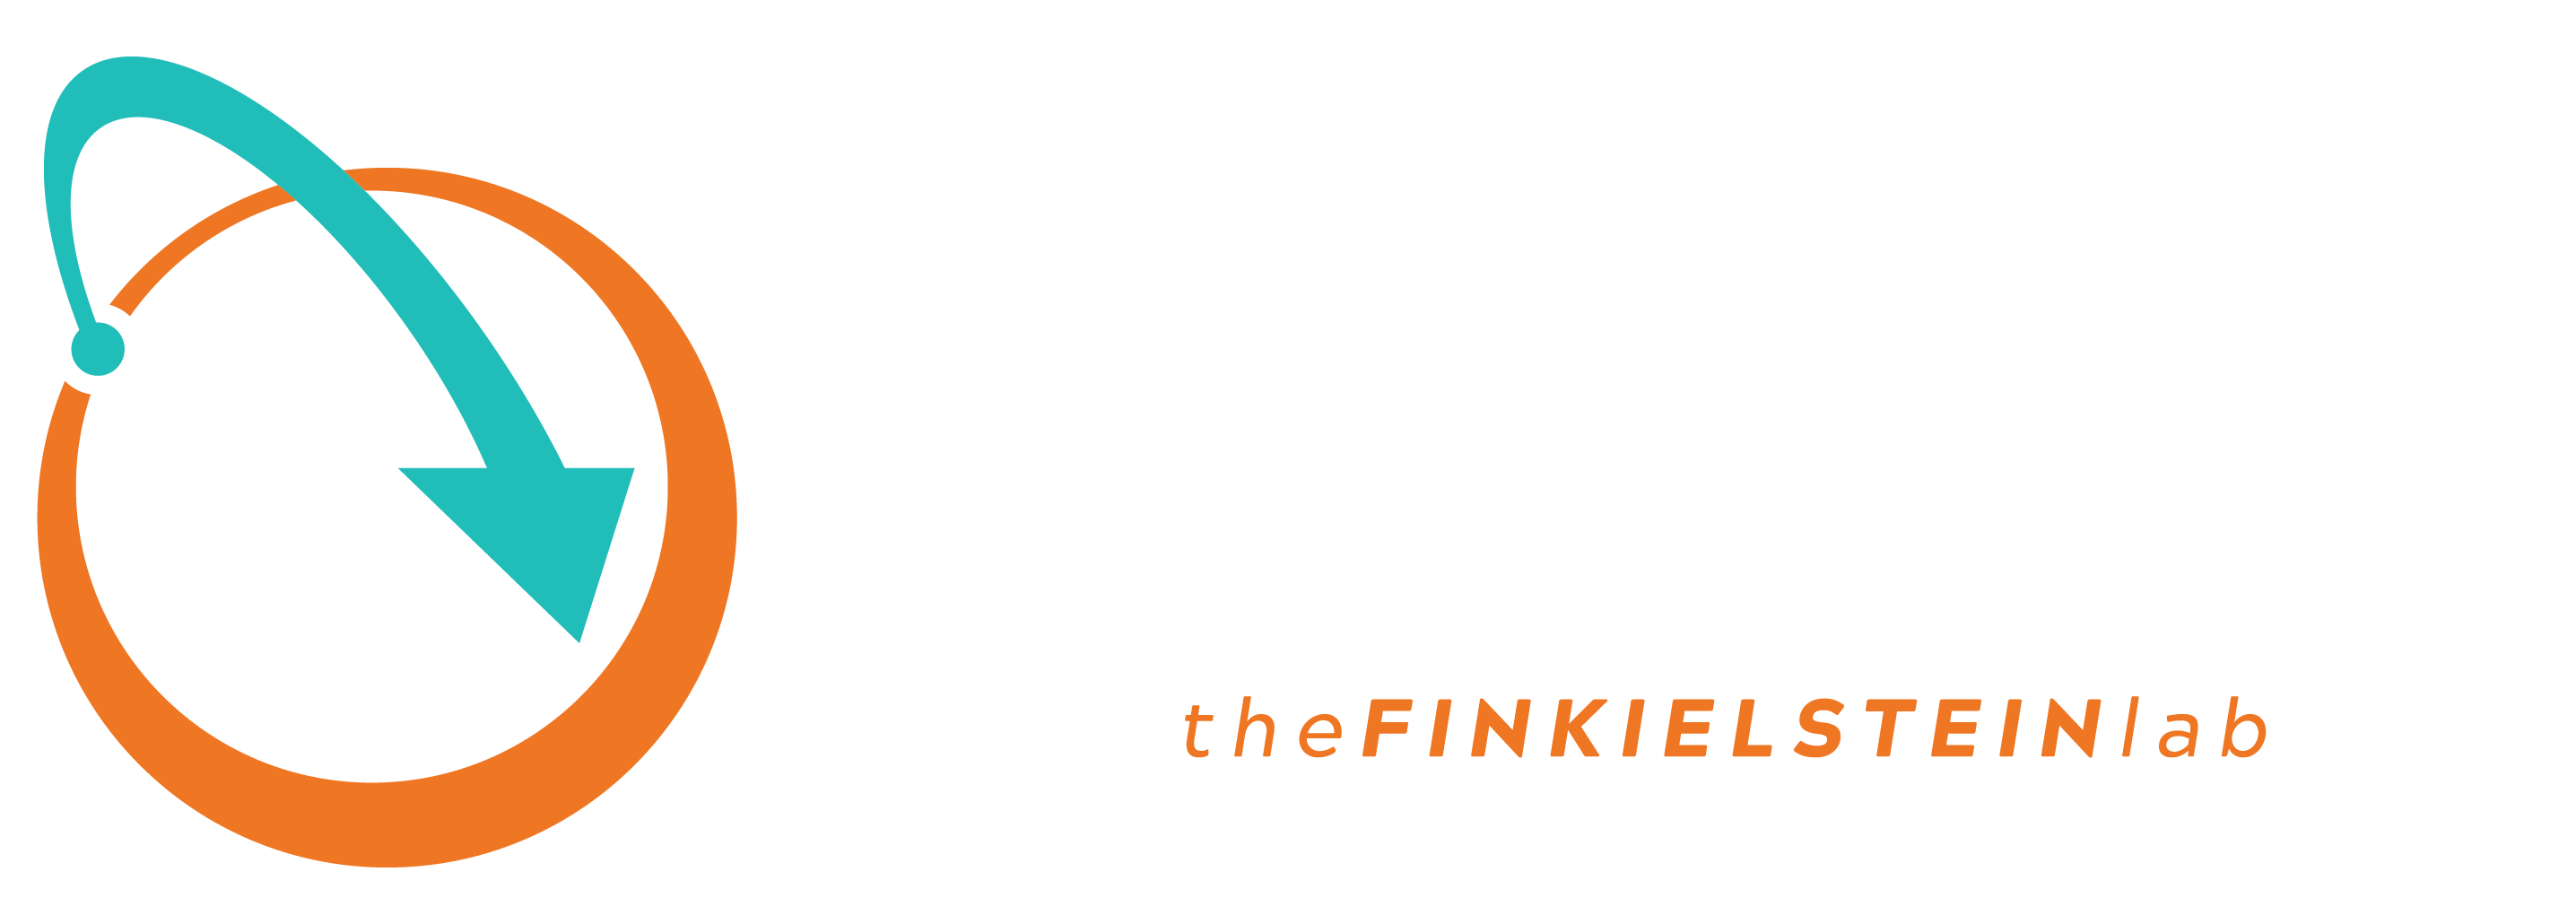 Integrated Cellular Responses Laboratory | The Finkielstein Lab Logo with white text